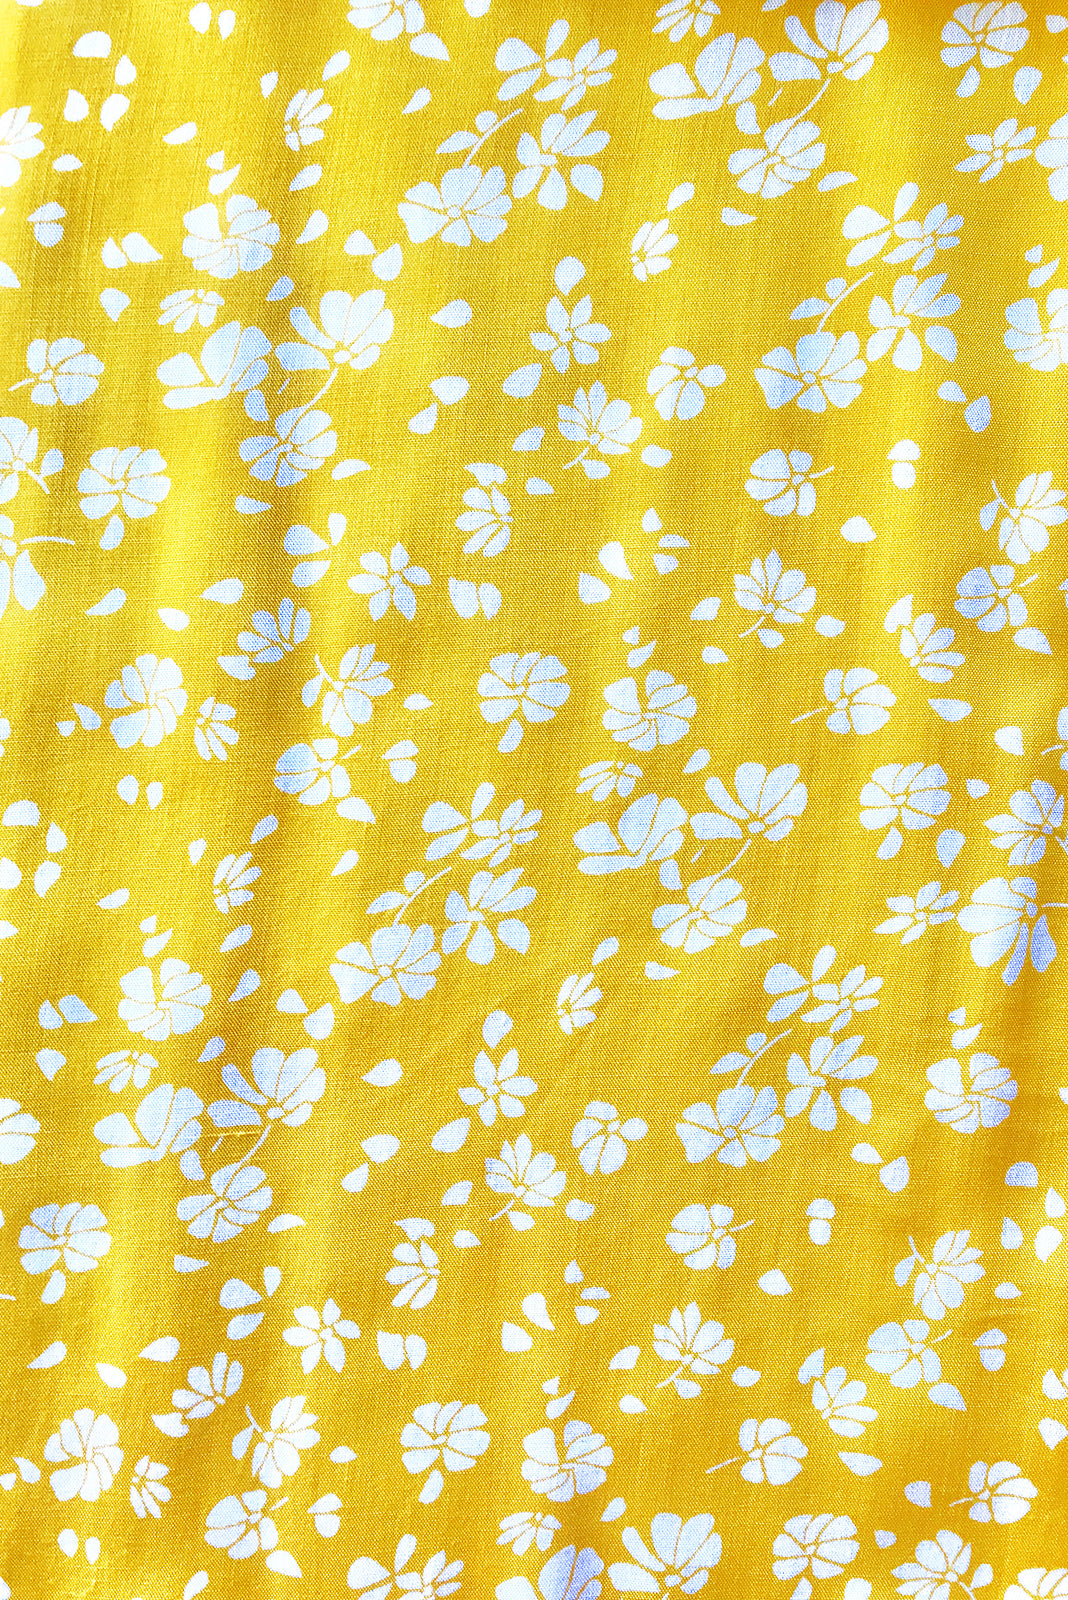 Fabric swatch, 100% woven rayon, bright yellow base with petite white floral print.